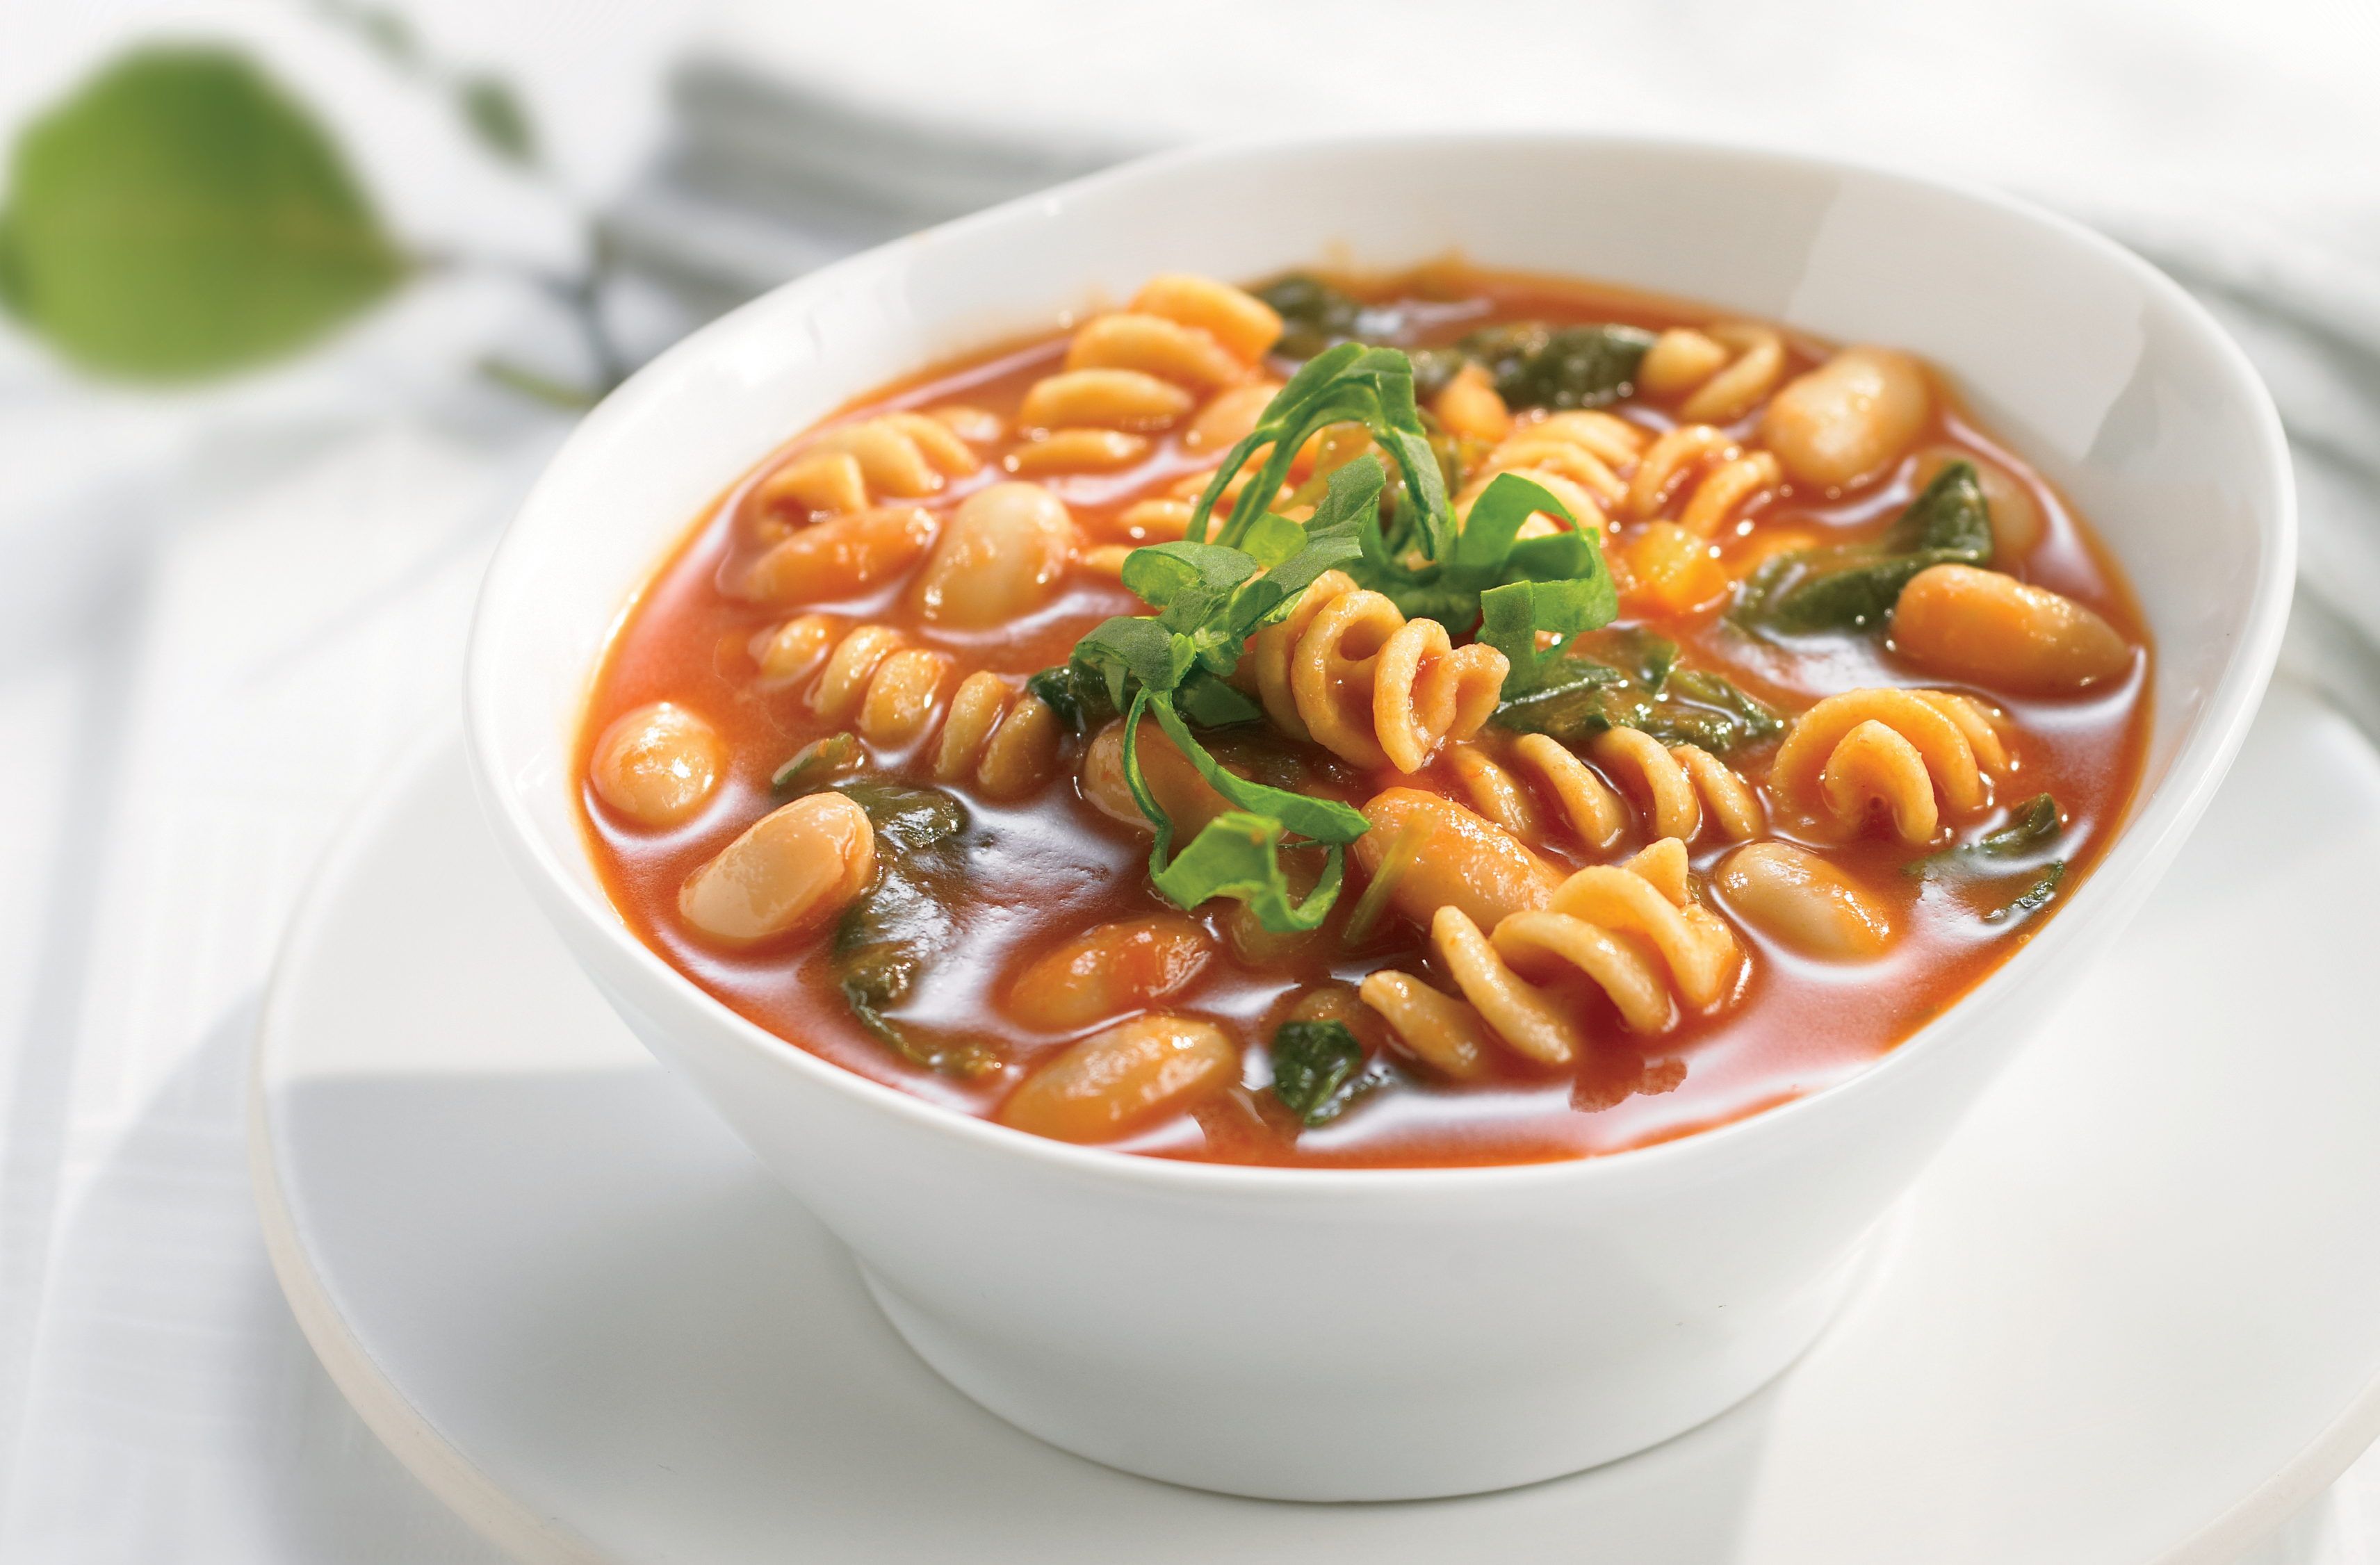 A bowl of rotini & kidney bean vegetable soup with onion, celery & spinach